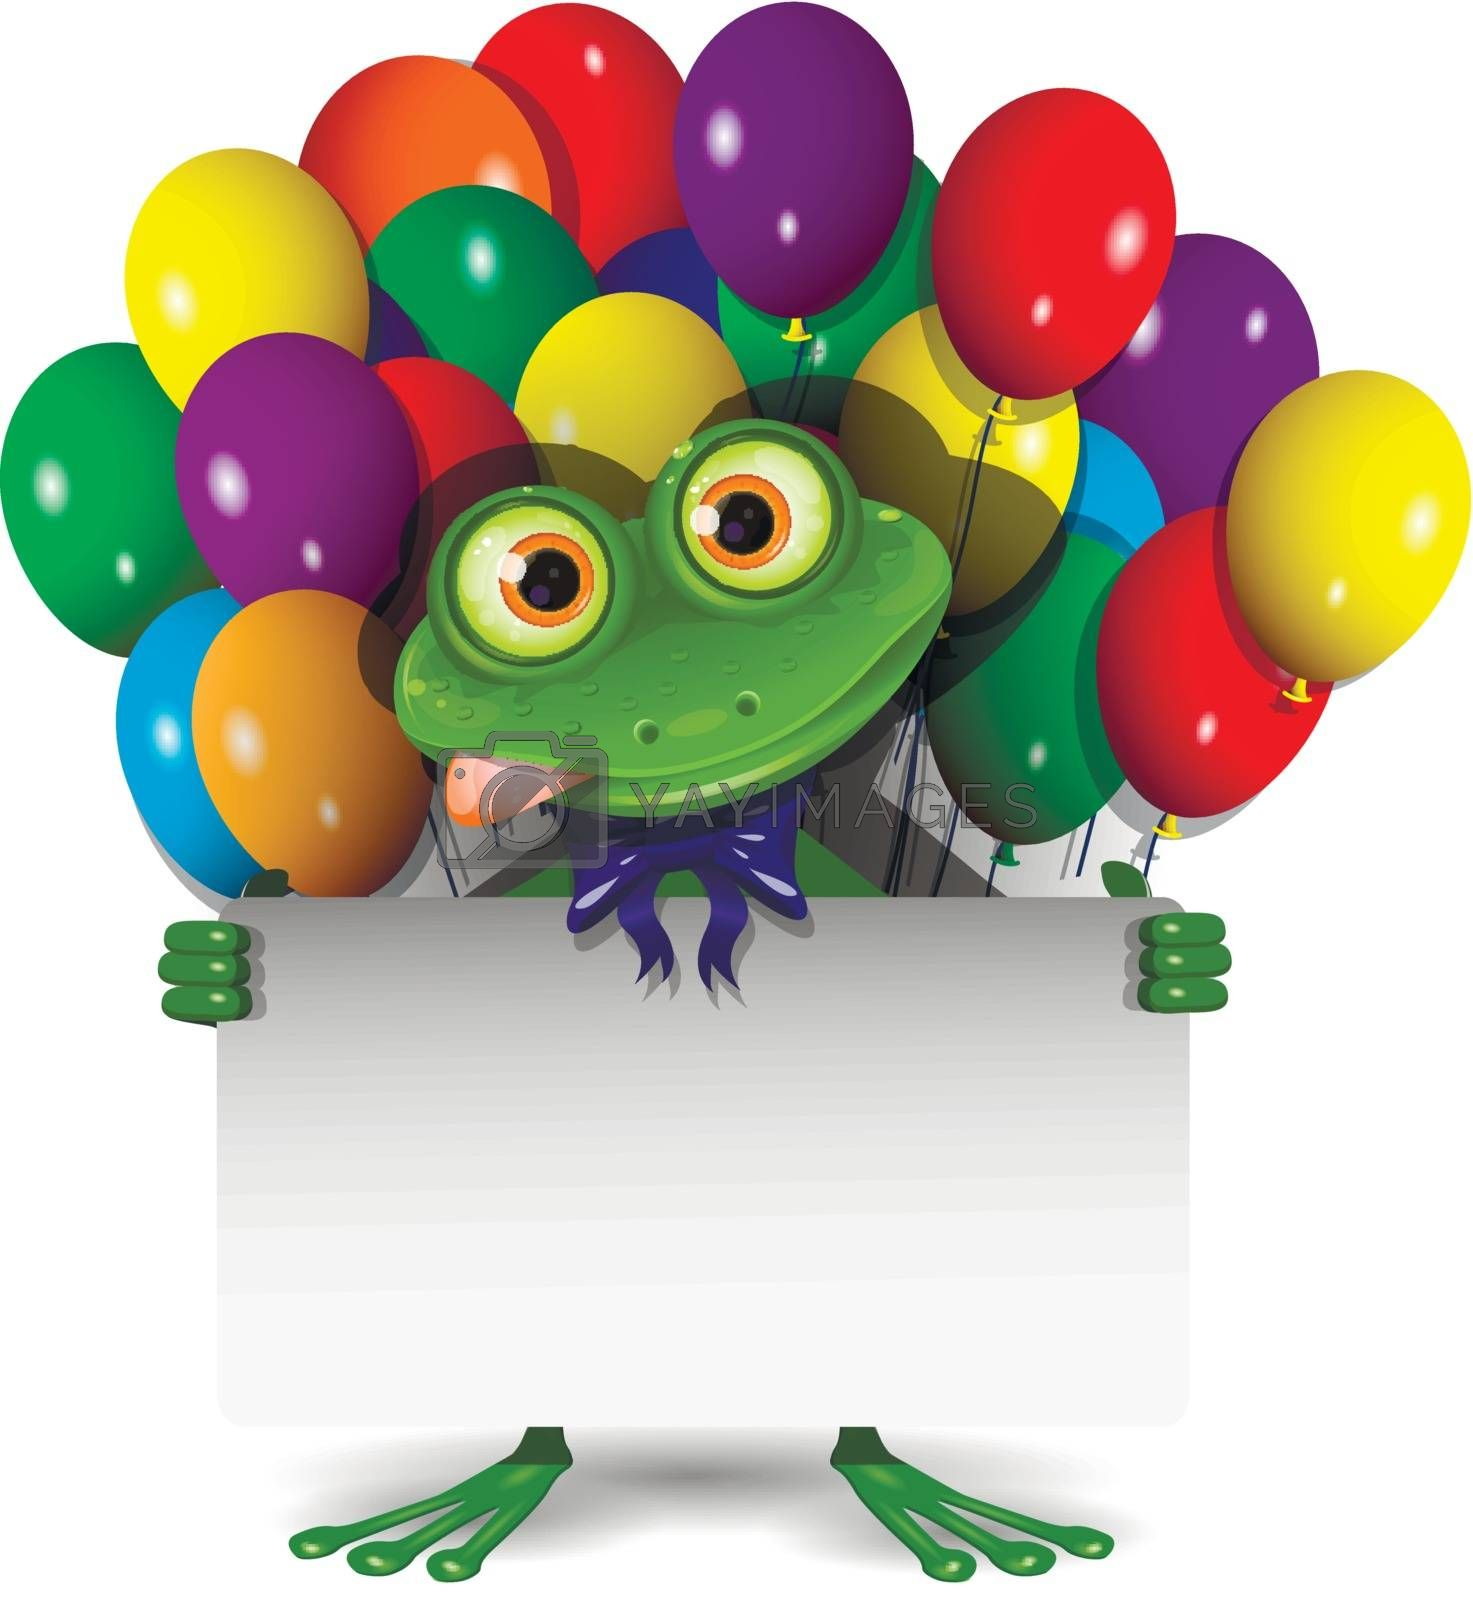 Illustration Frog With a White Background and Balloons